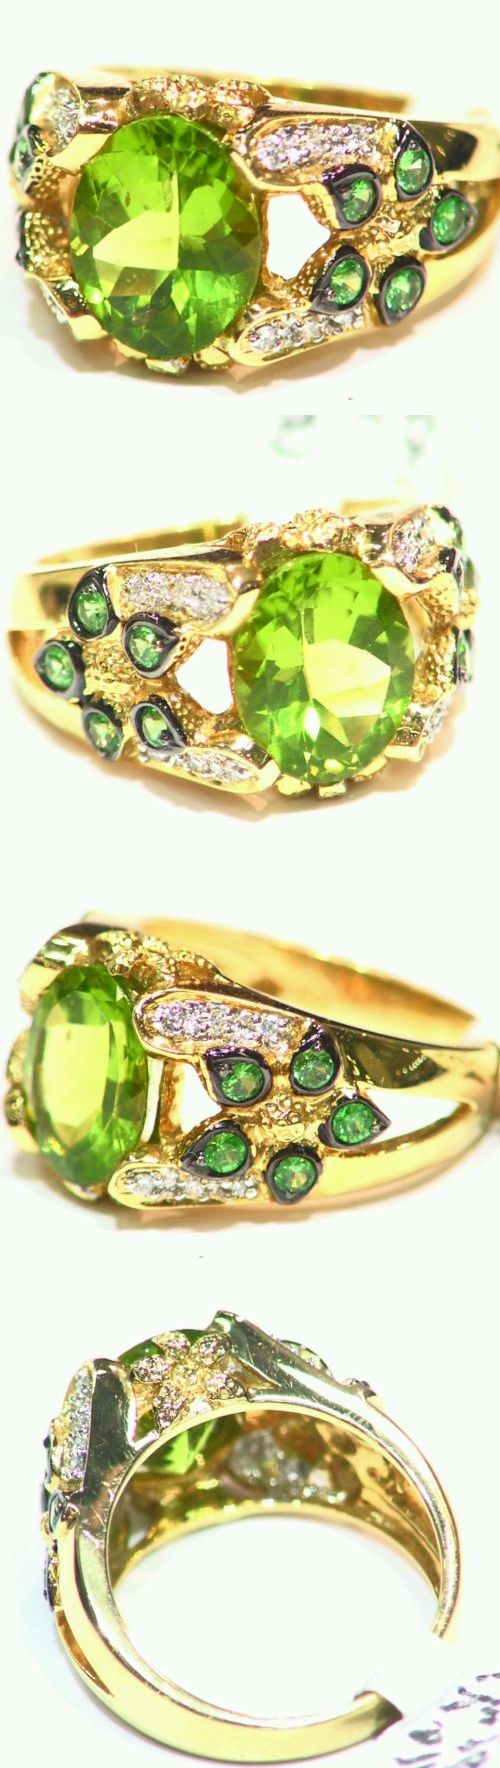 Rings 165014: 3.77Ct 18K Gold Natural Peridot Round Cut White Diamond Vintage Engagement Ring BUY IT NOW ONLY: $731.0